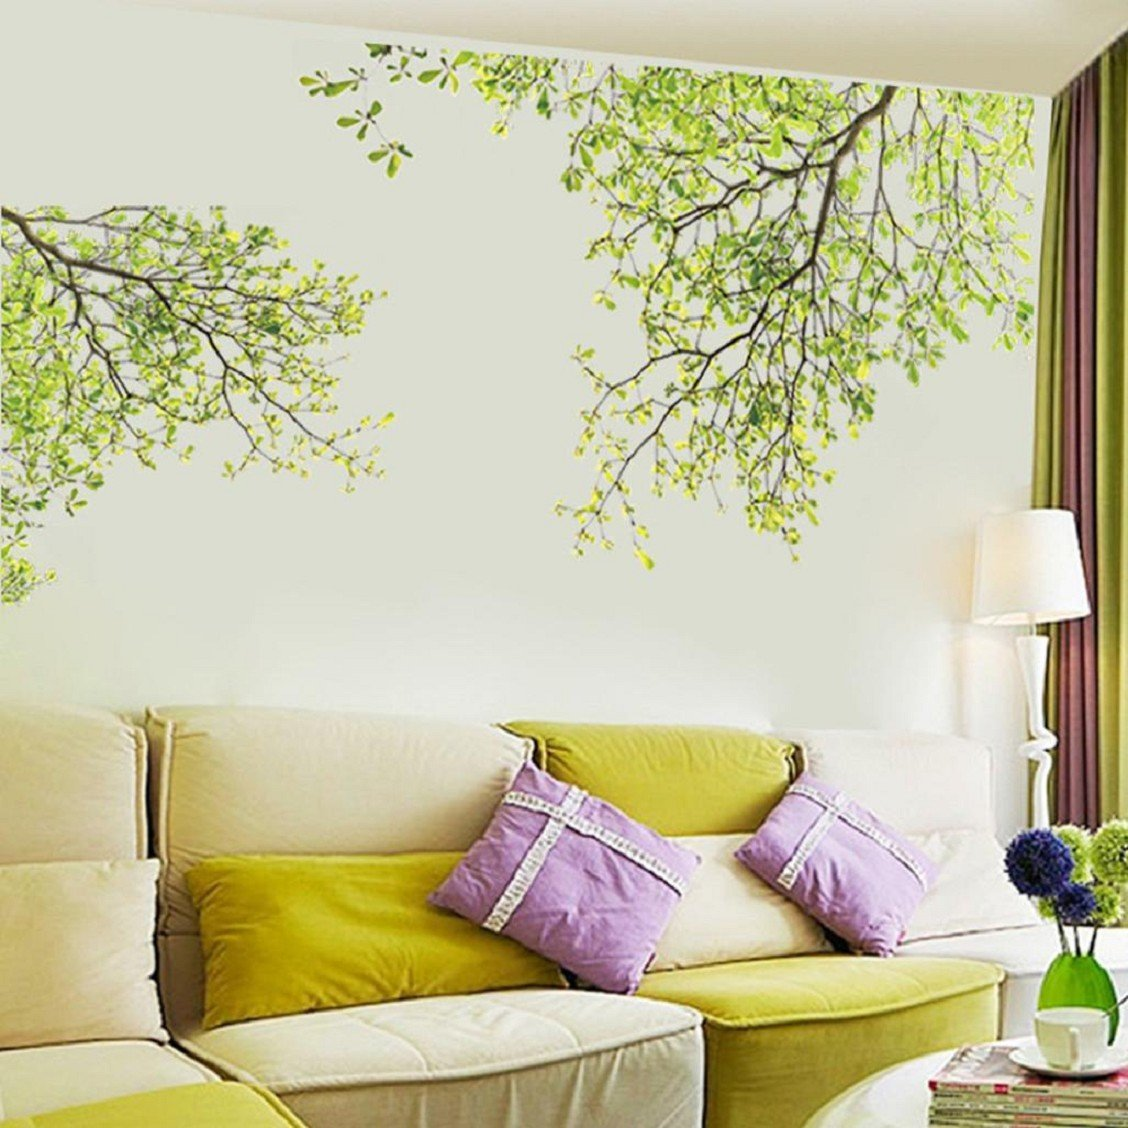 Naladoo New Nature Leaves Home Household Room Wall Sticker Mural Decor Decal Removable